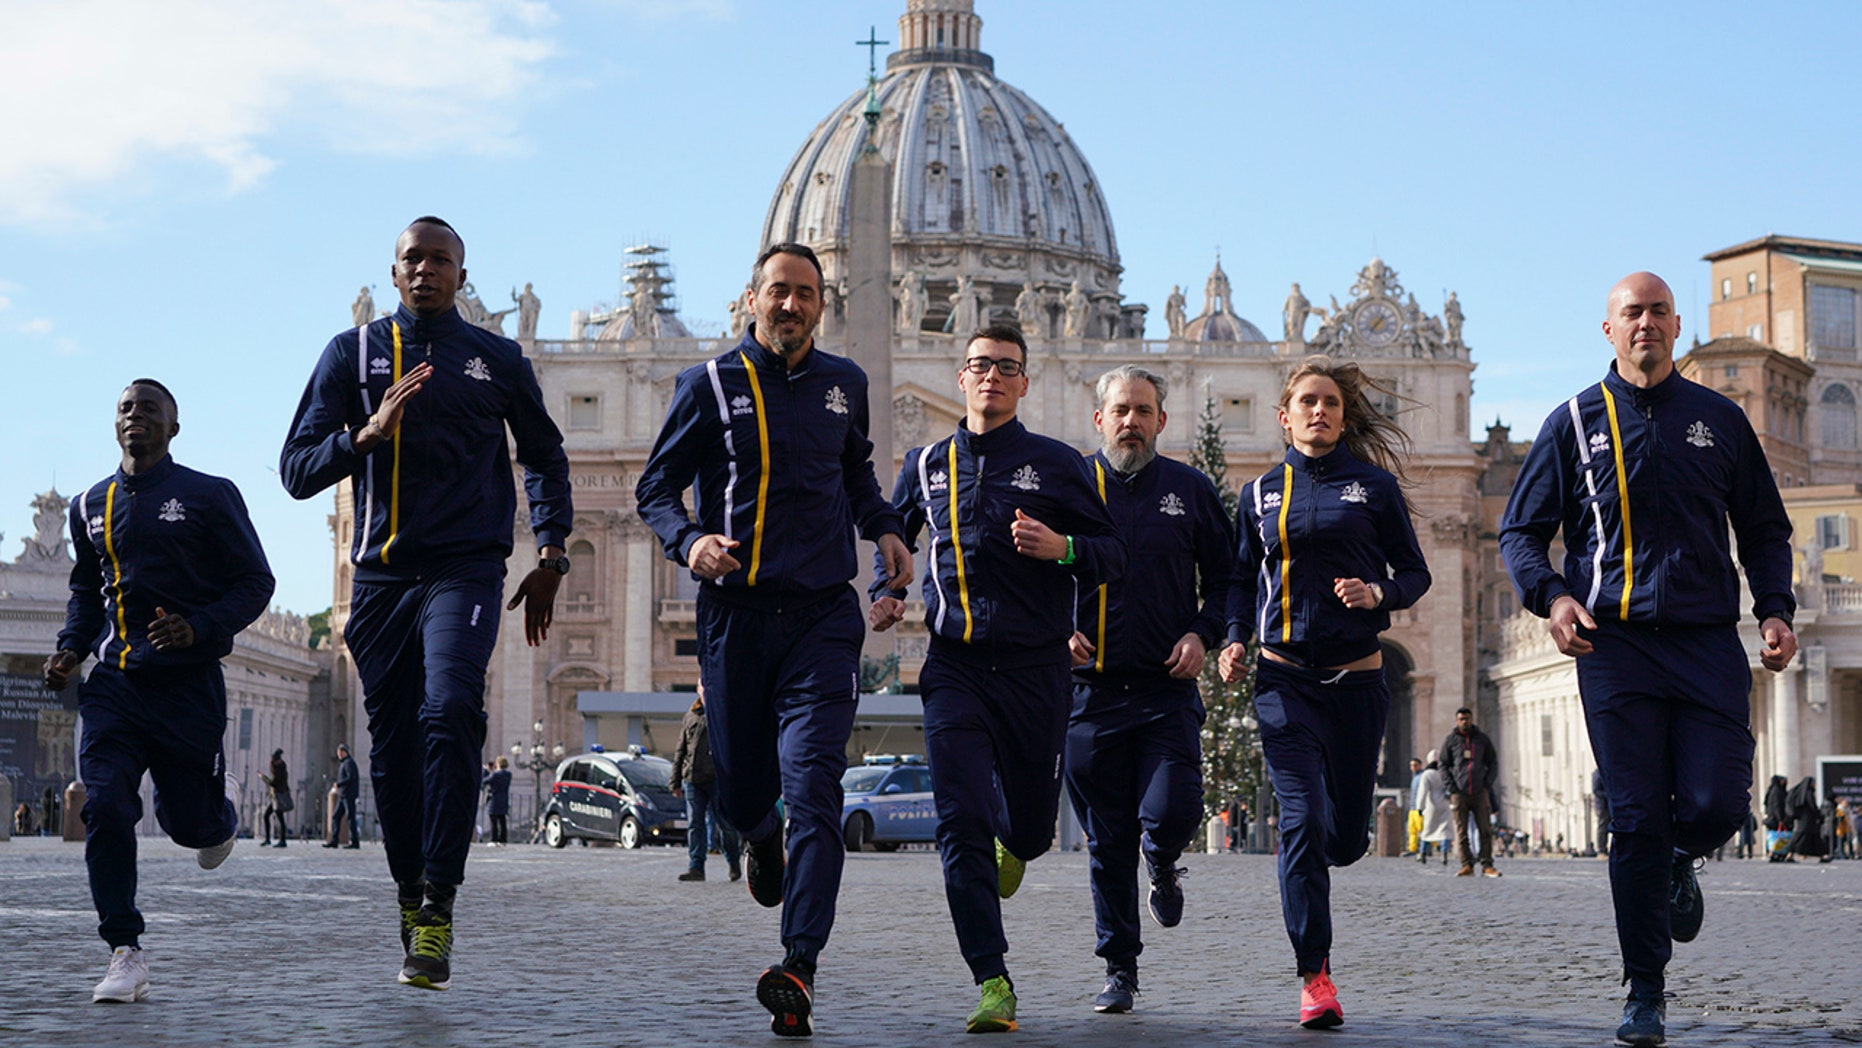 About 60 Holy See employees are the first accredited members of Vatican Athletics. They include Swiss Guards, priests, nuns, pharmacists and even a 62-year-old professor who works in the Vatican's Apostolic Library.